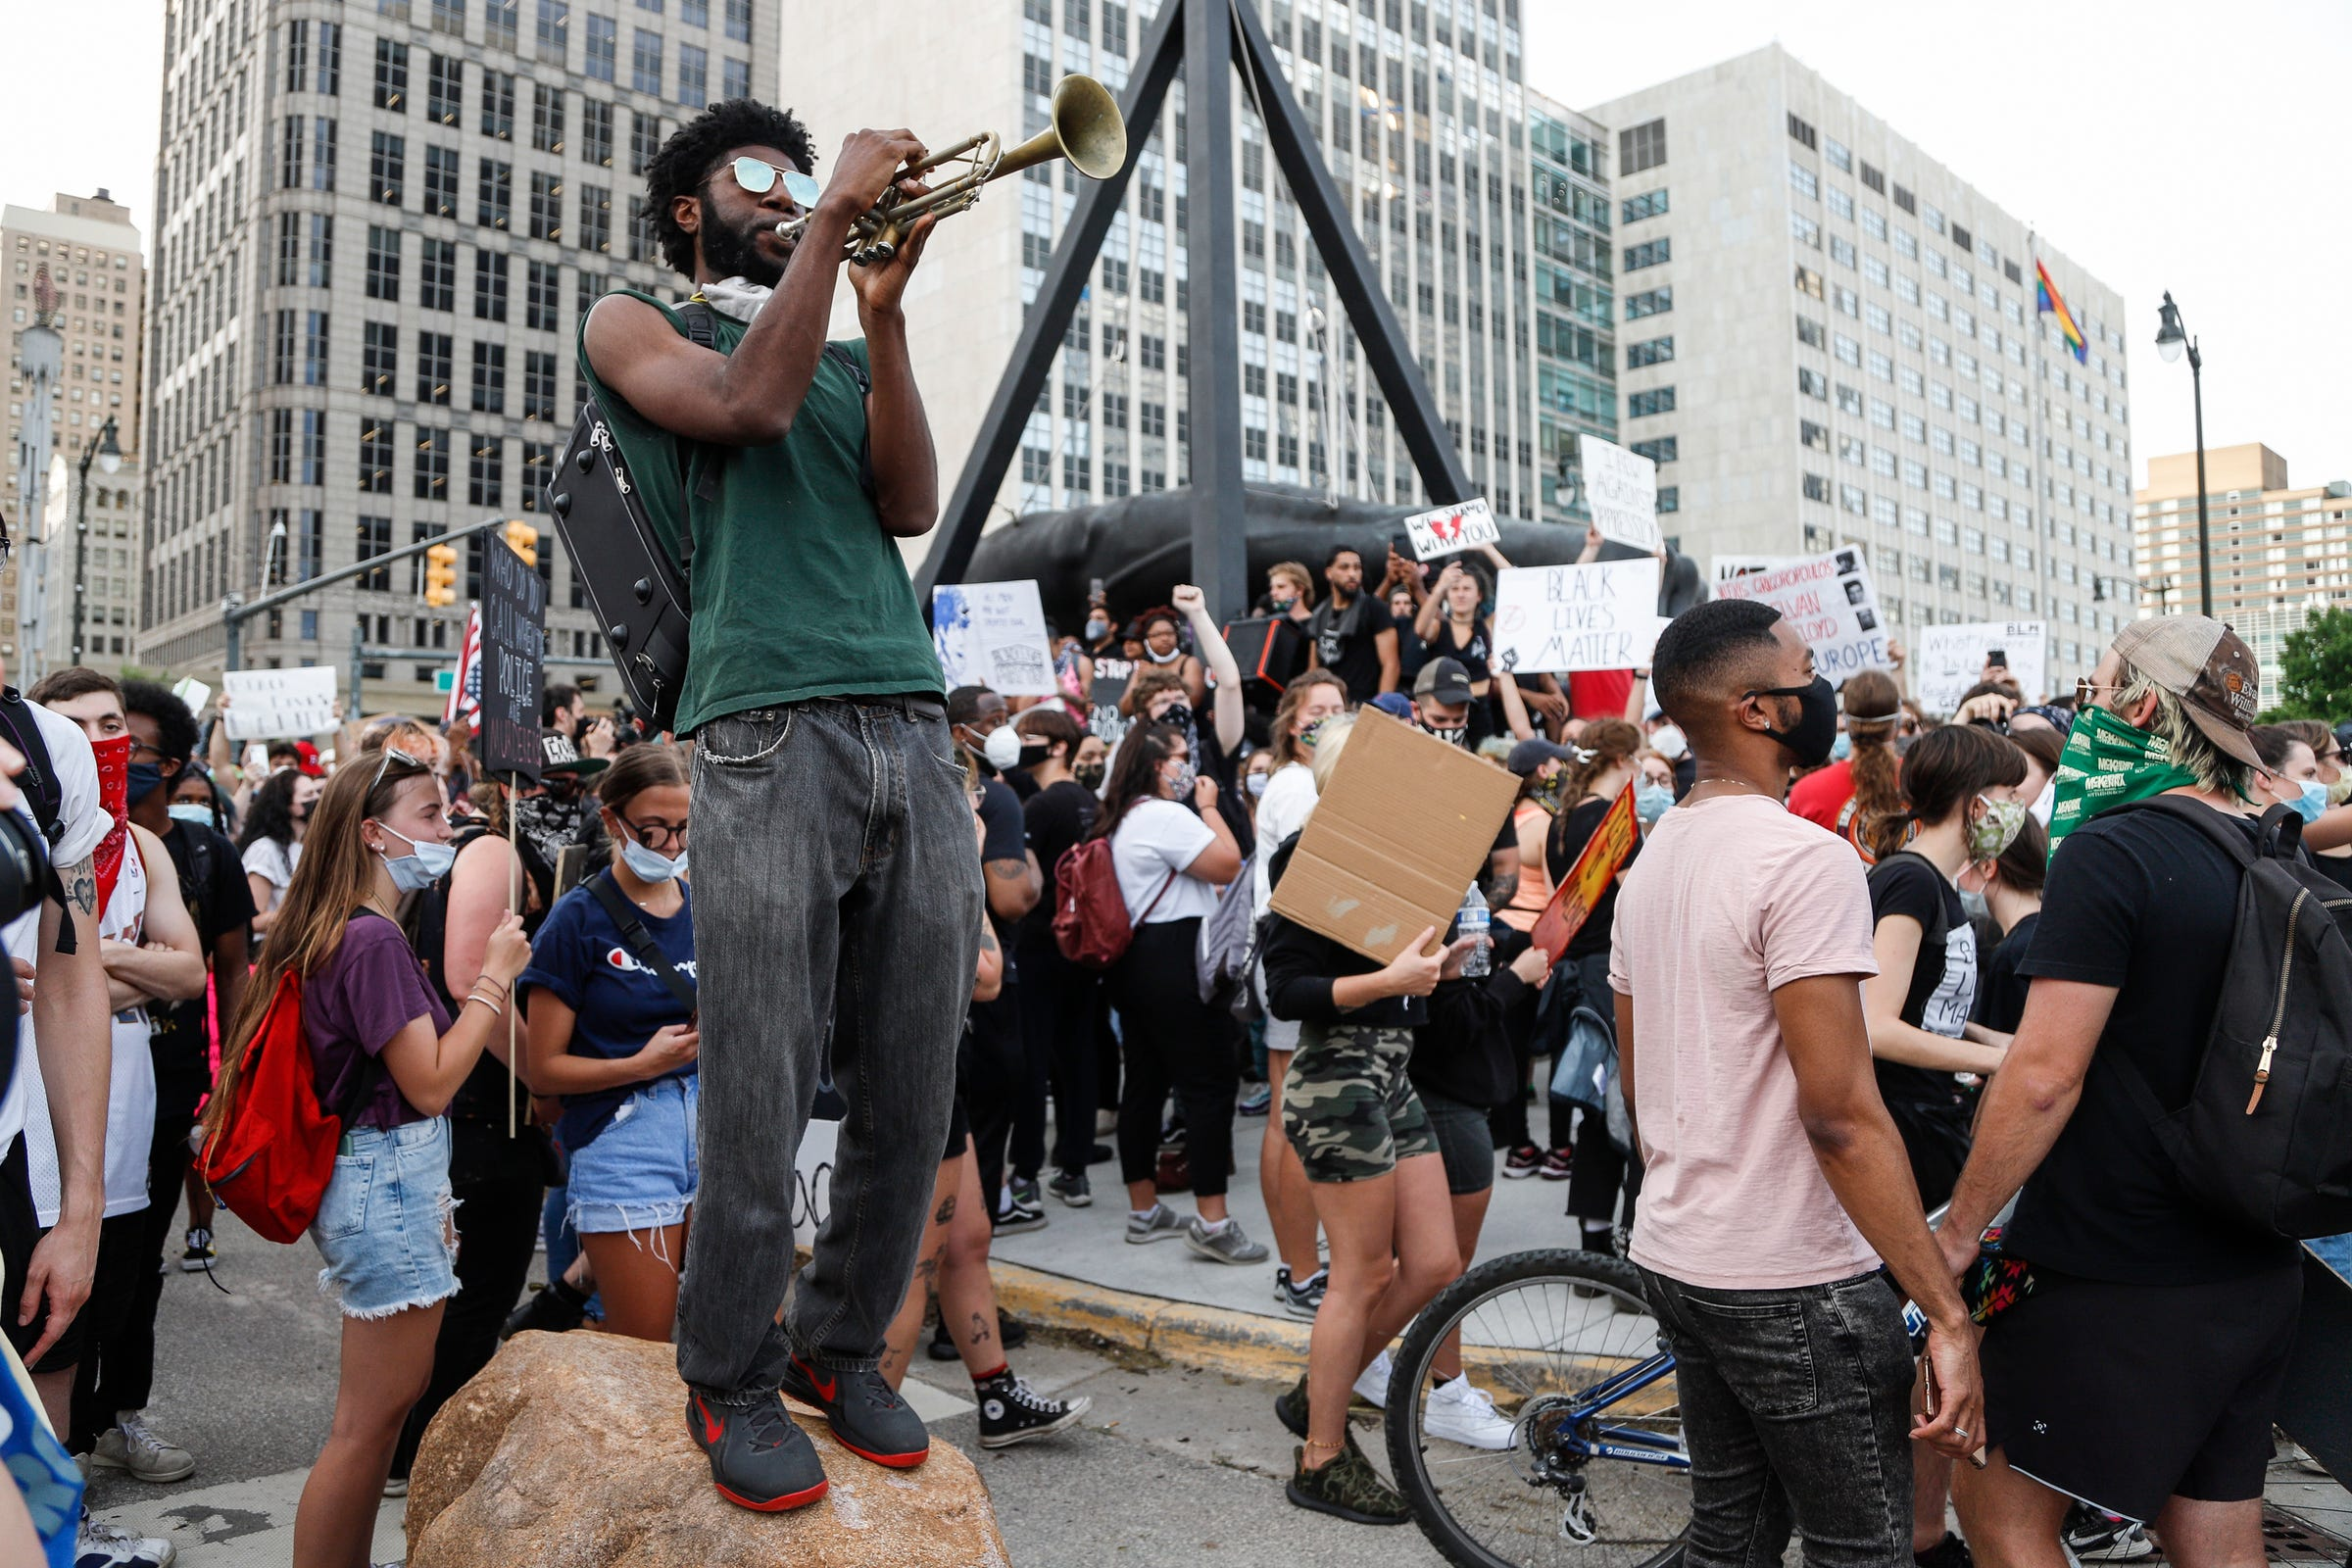 Allen Dennard of Detroit plays trumpet as the crowd gather around the Monument to Joe Louis or The Fist, as it is commonly known, in downtown Detroit, Wednesday, June 3, 2020.